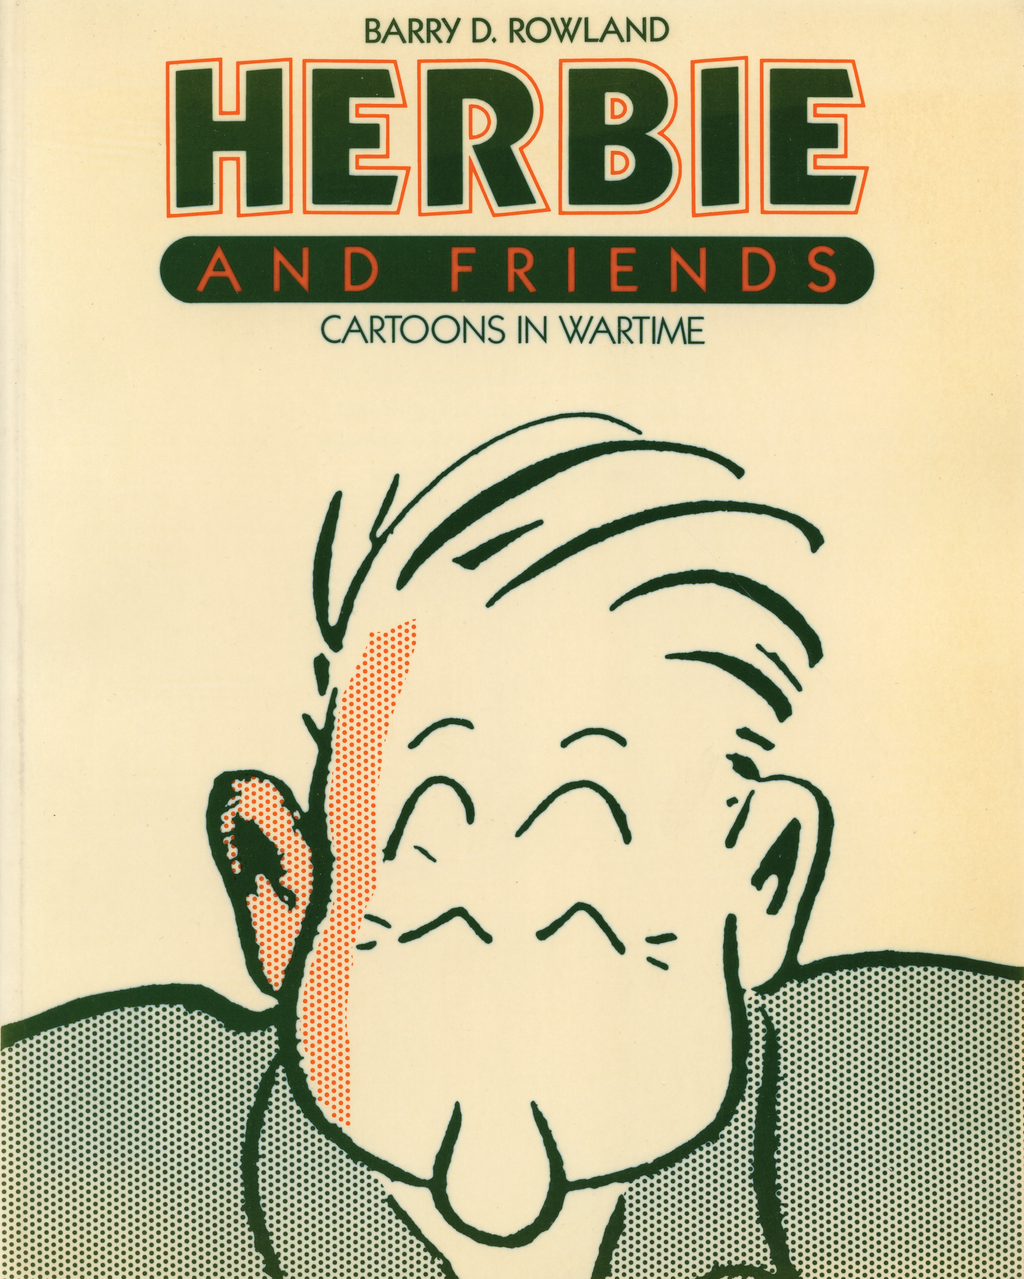 Herbie and Friends